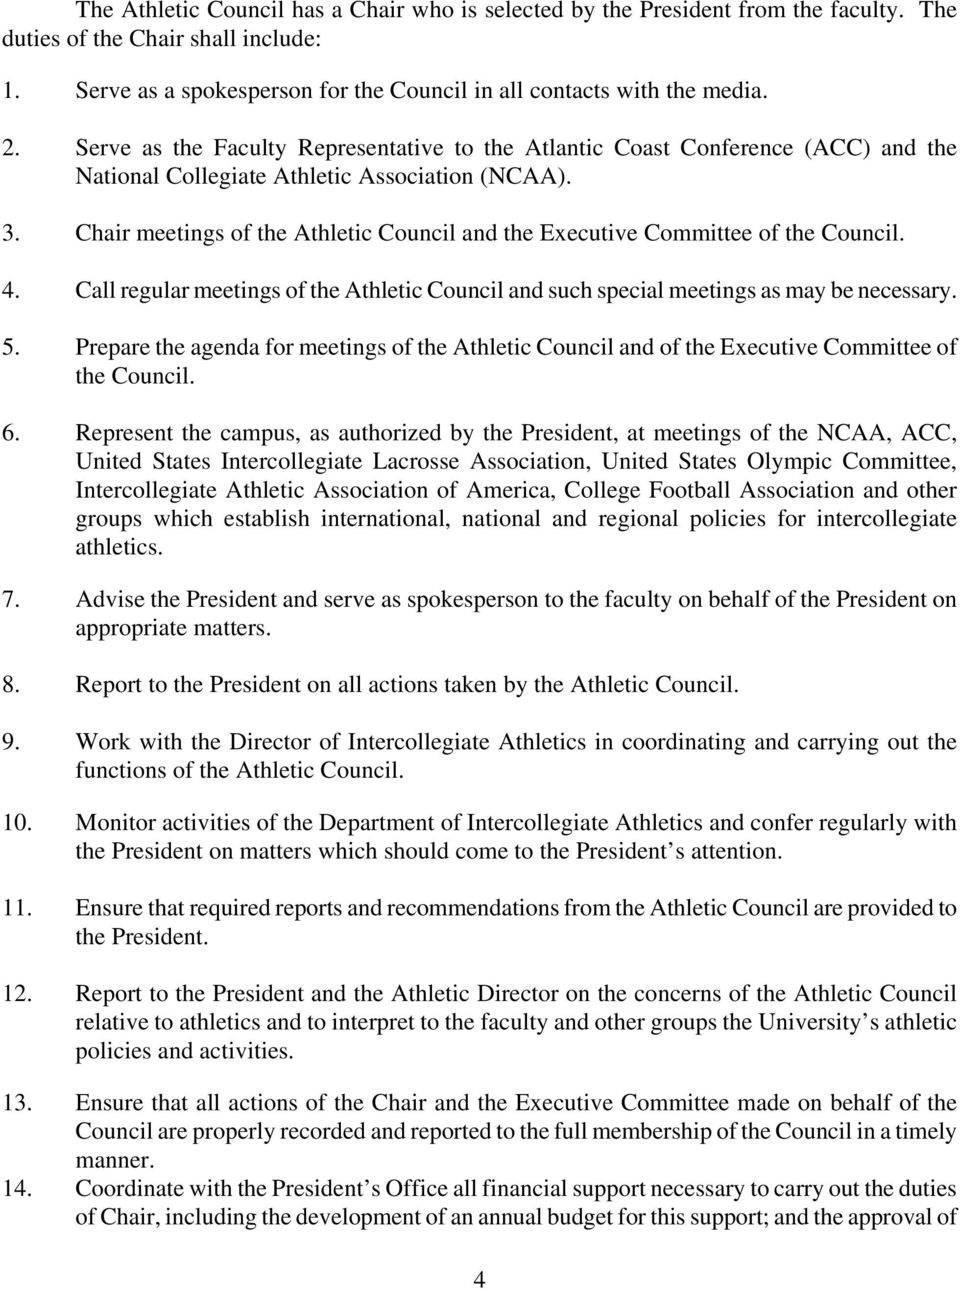 Chair meetings of the Athletic Council and the Executive Committee of the Council. 4. Call regular meetings of the Athletic Council and such special meetings as may be necessary. 5.